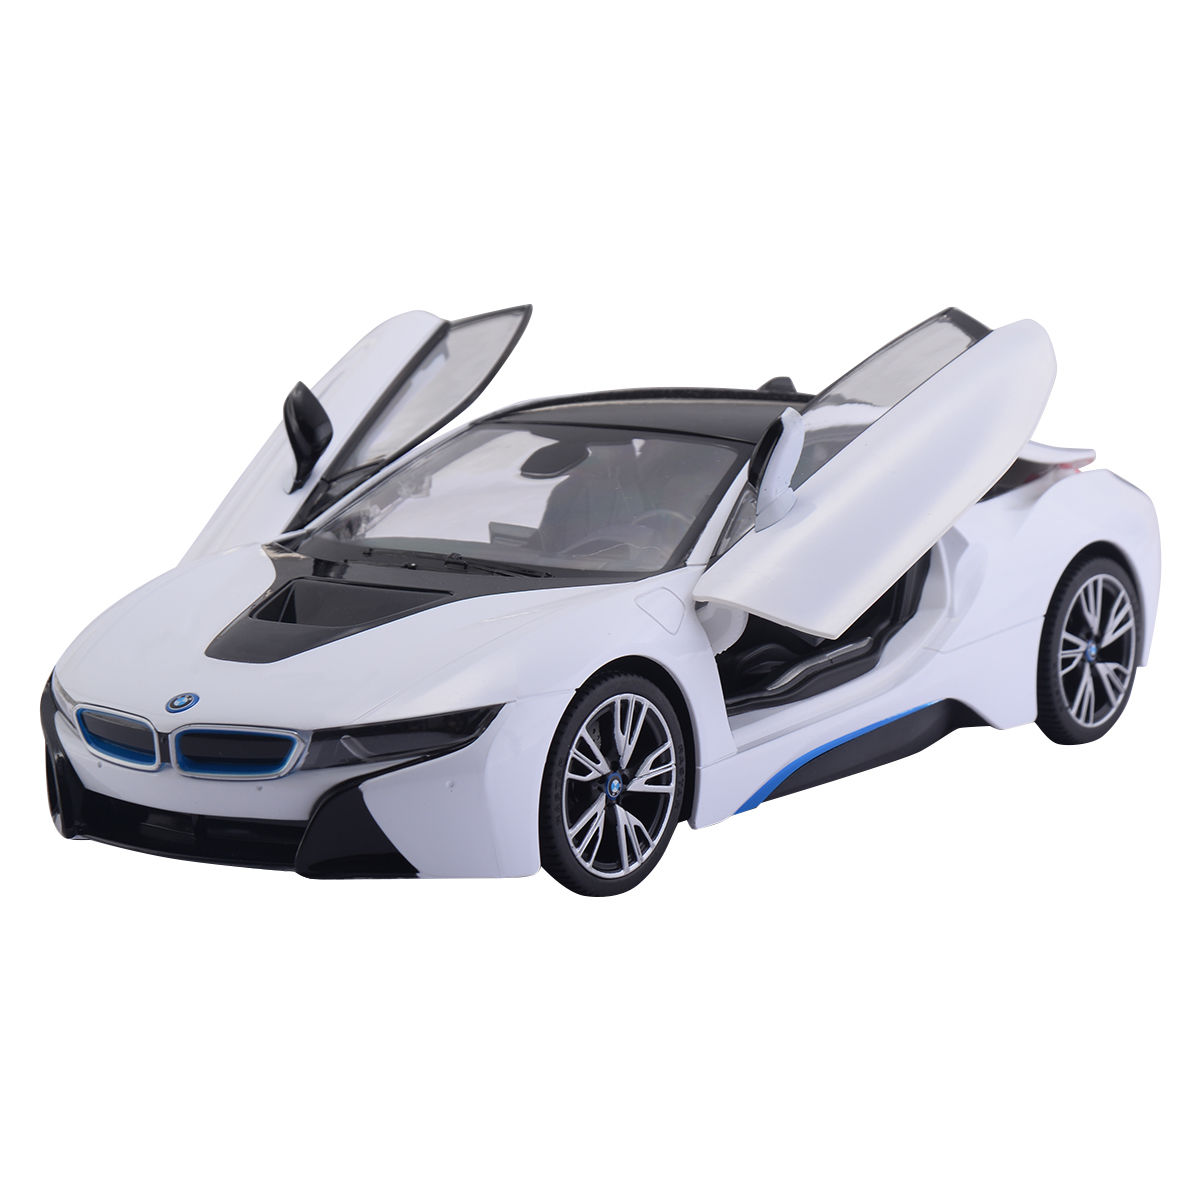 Licensed Rastar R C Remote Control Car Vehicle 1 18 Bmw I8 59200